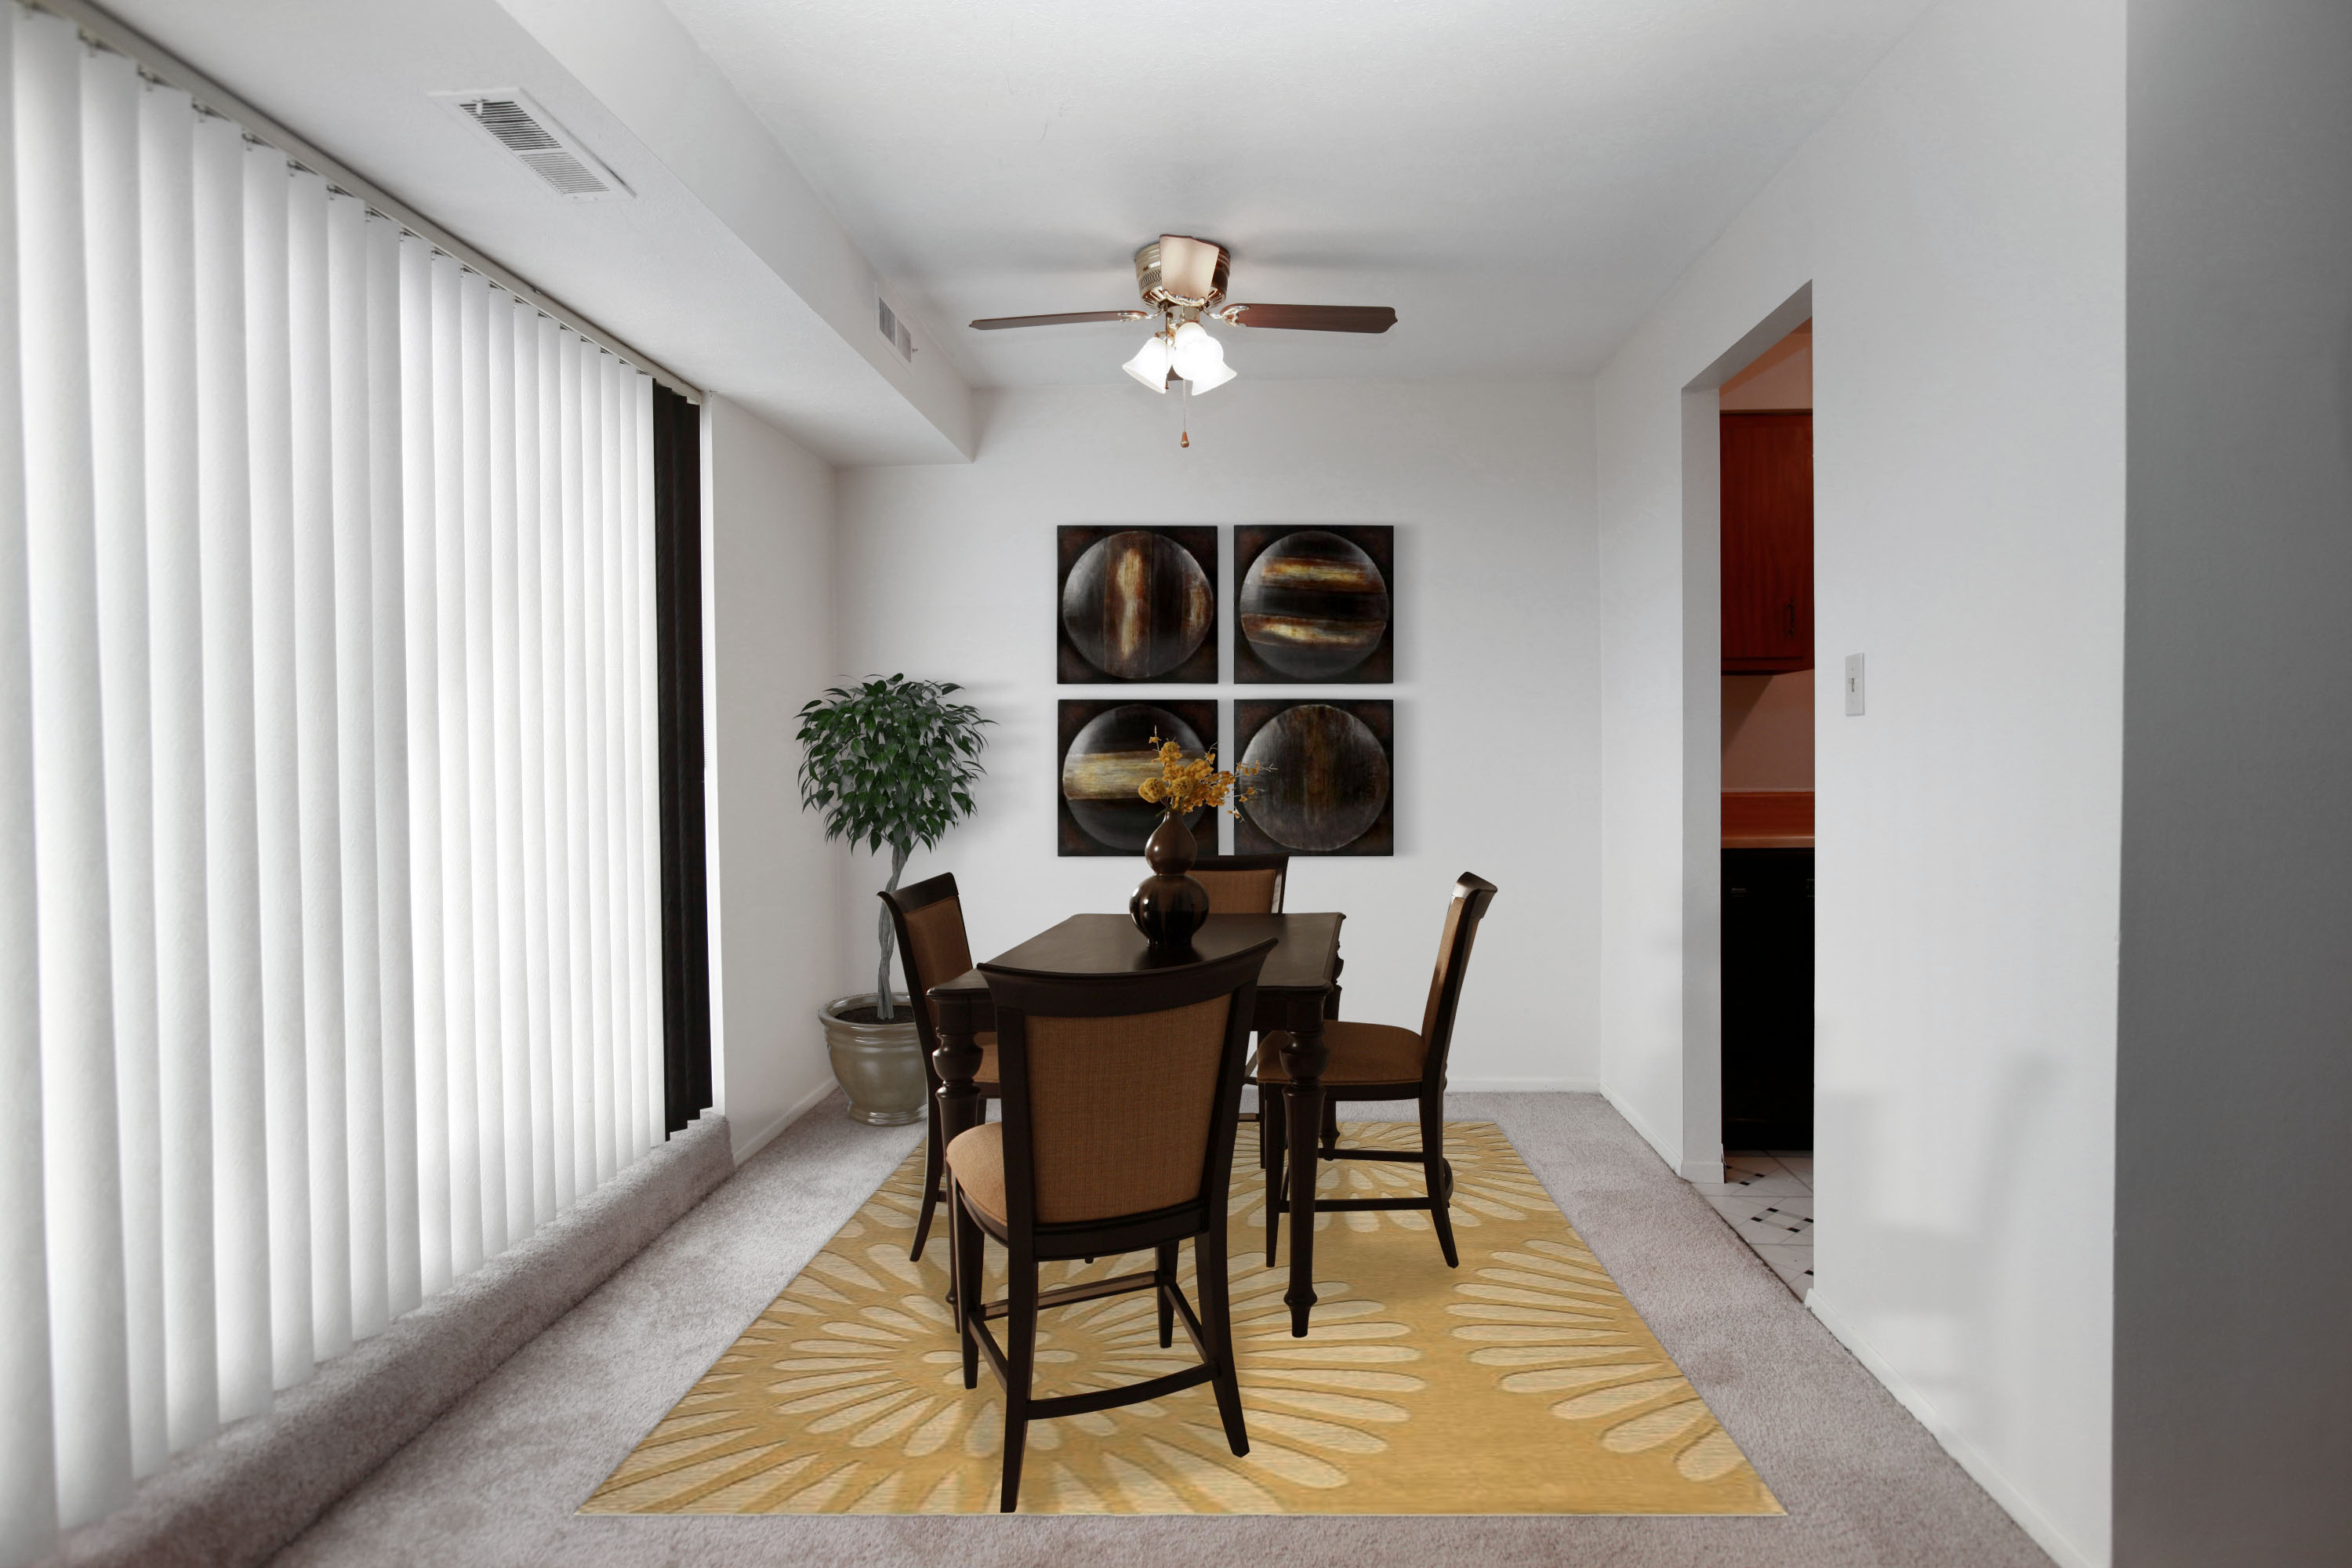 1A Dining Room Furnished at the Greenridge on Euclid Apartments in Euclid, OH